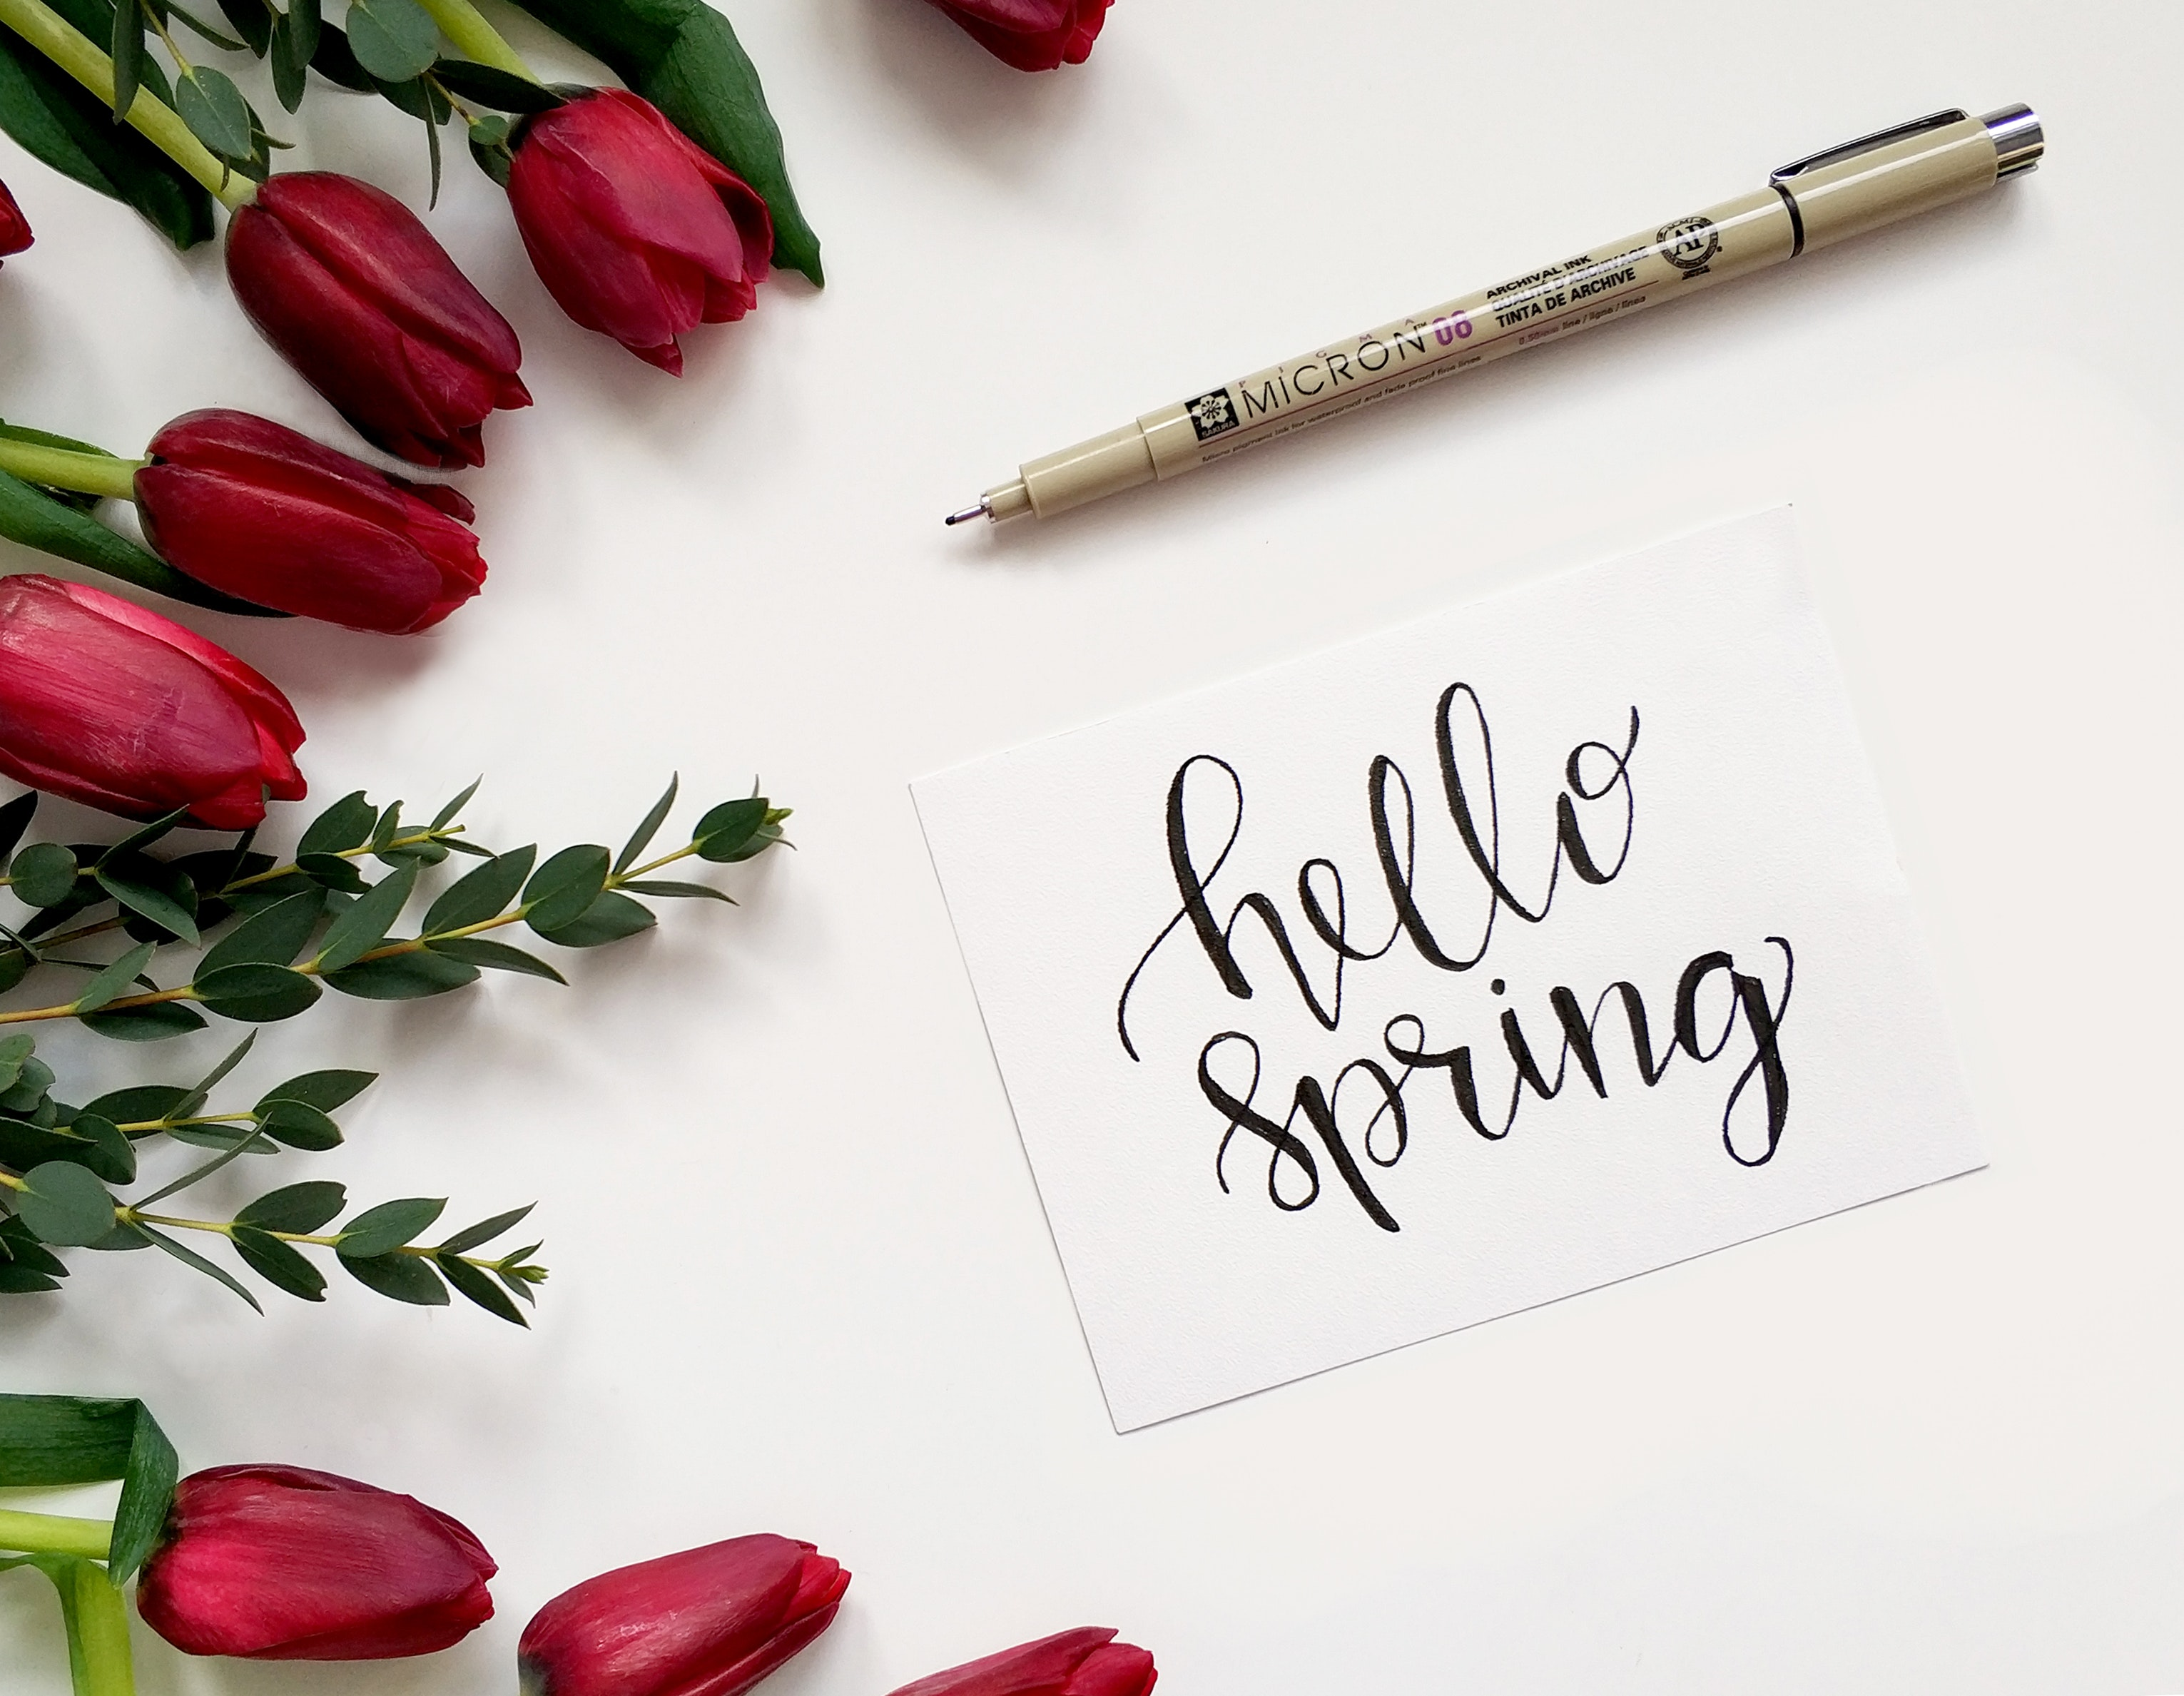 100 adjectives words to describe Spring weather